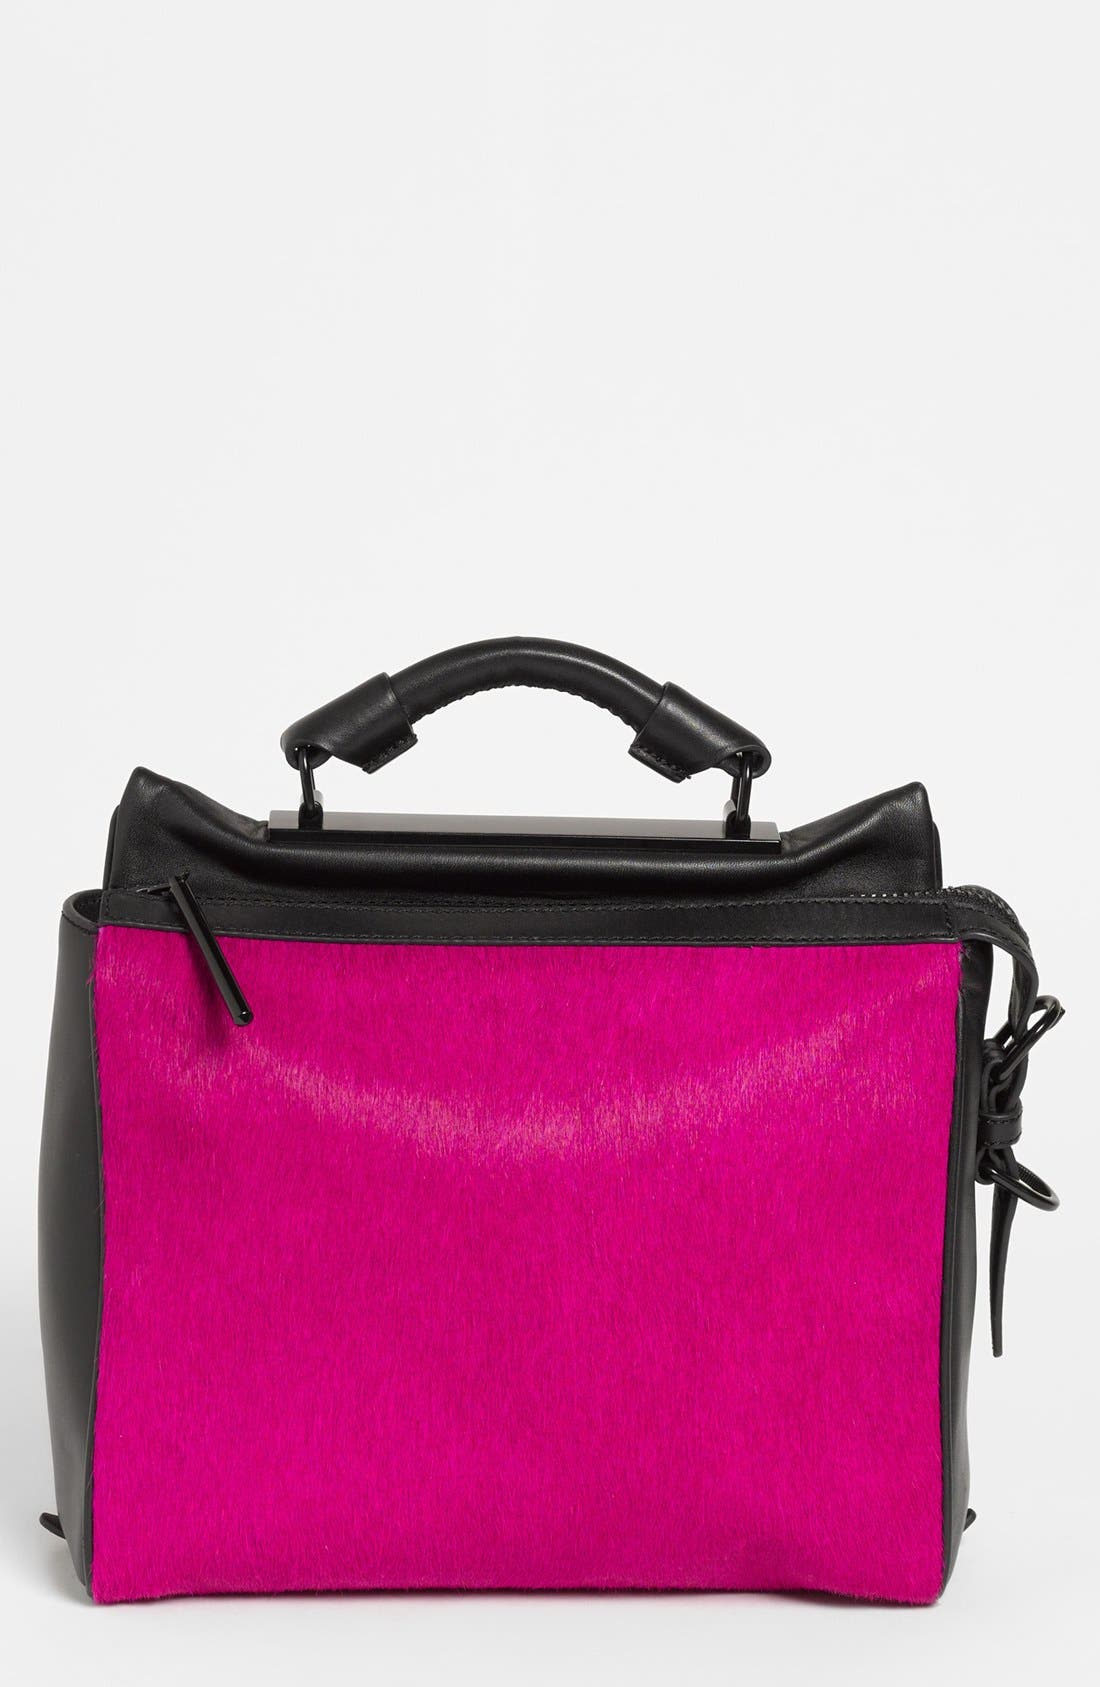 Main Image - 3.1 Phillip Lim 'Ryder - Small' Calf Hair & Leather Satchel